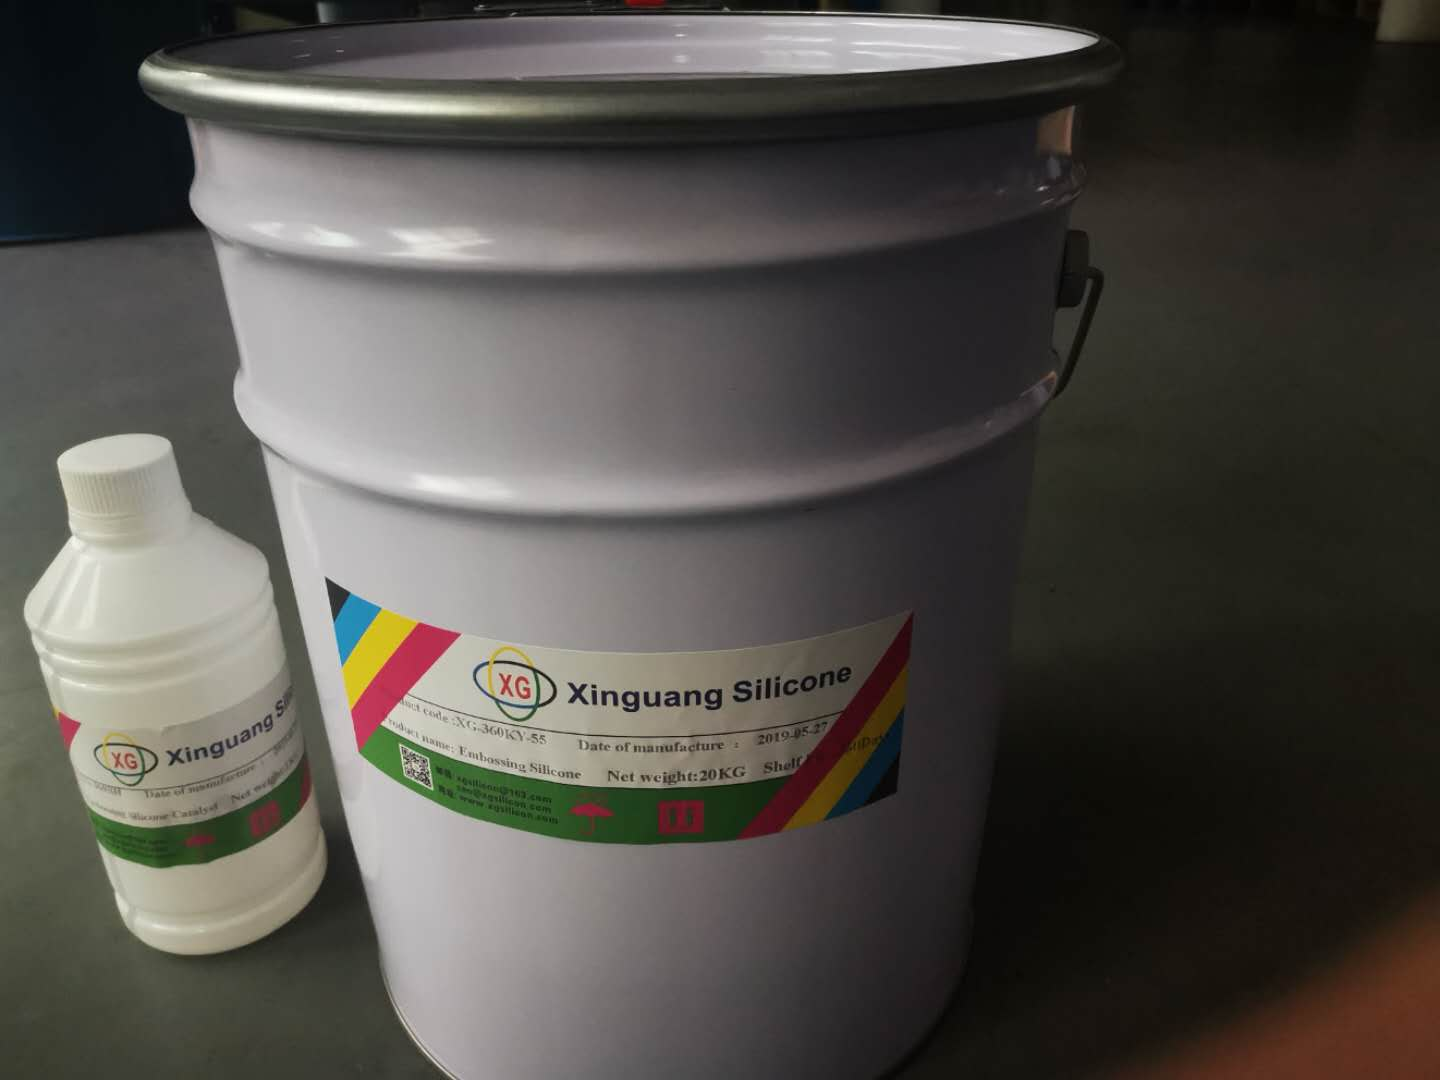 Embossing silicone XG-360KY-55